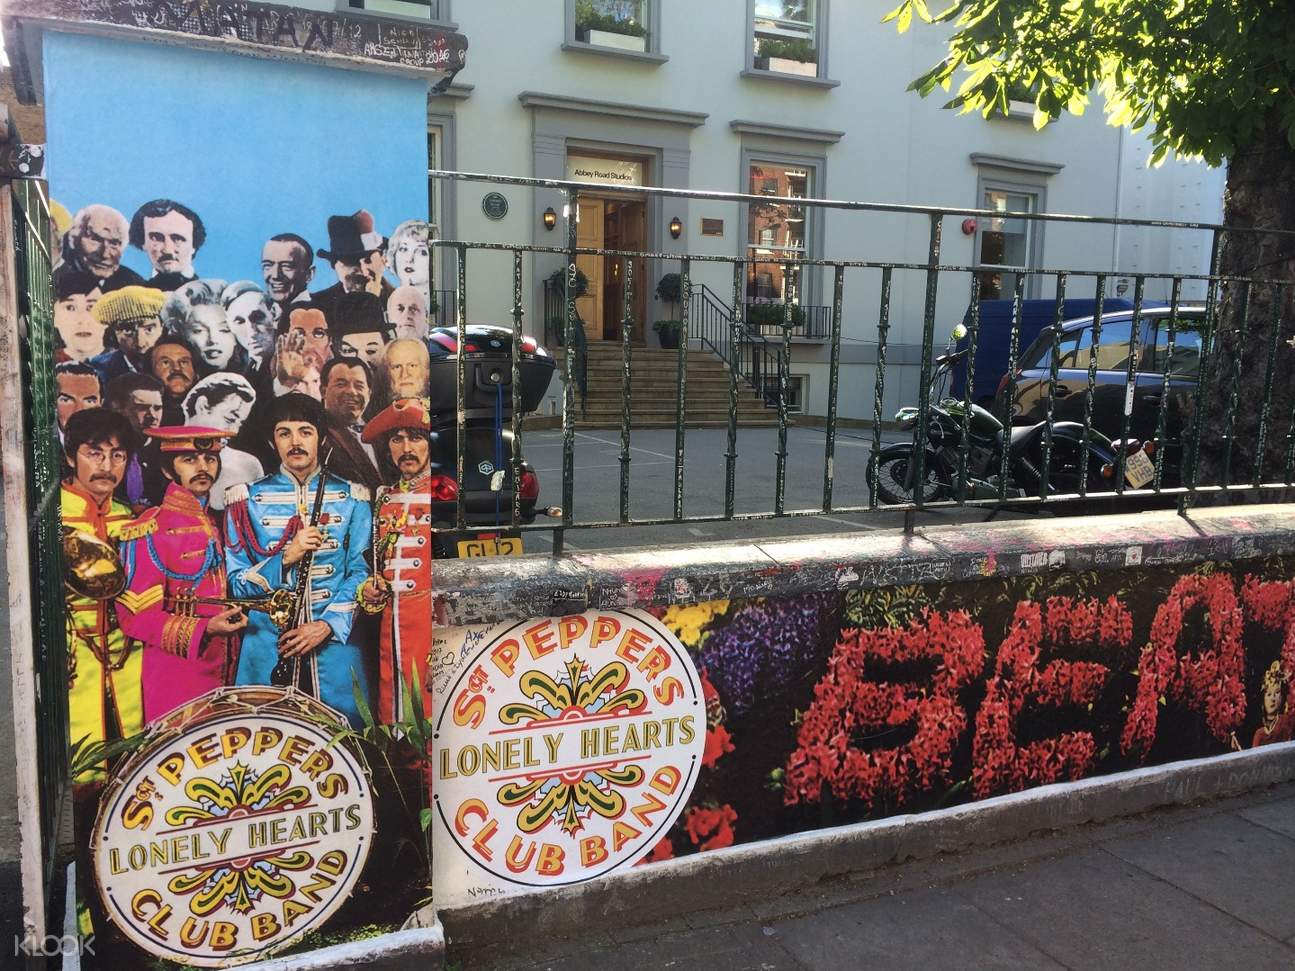 Sgt. Peppers Club